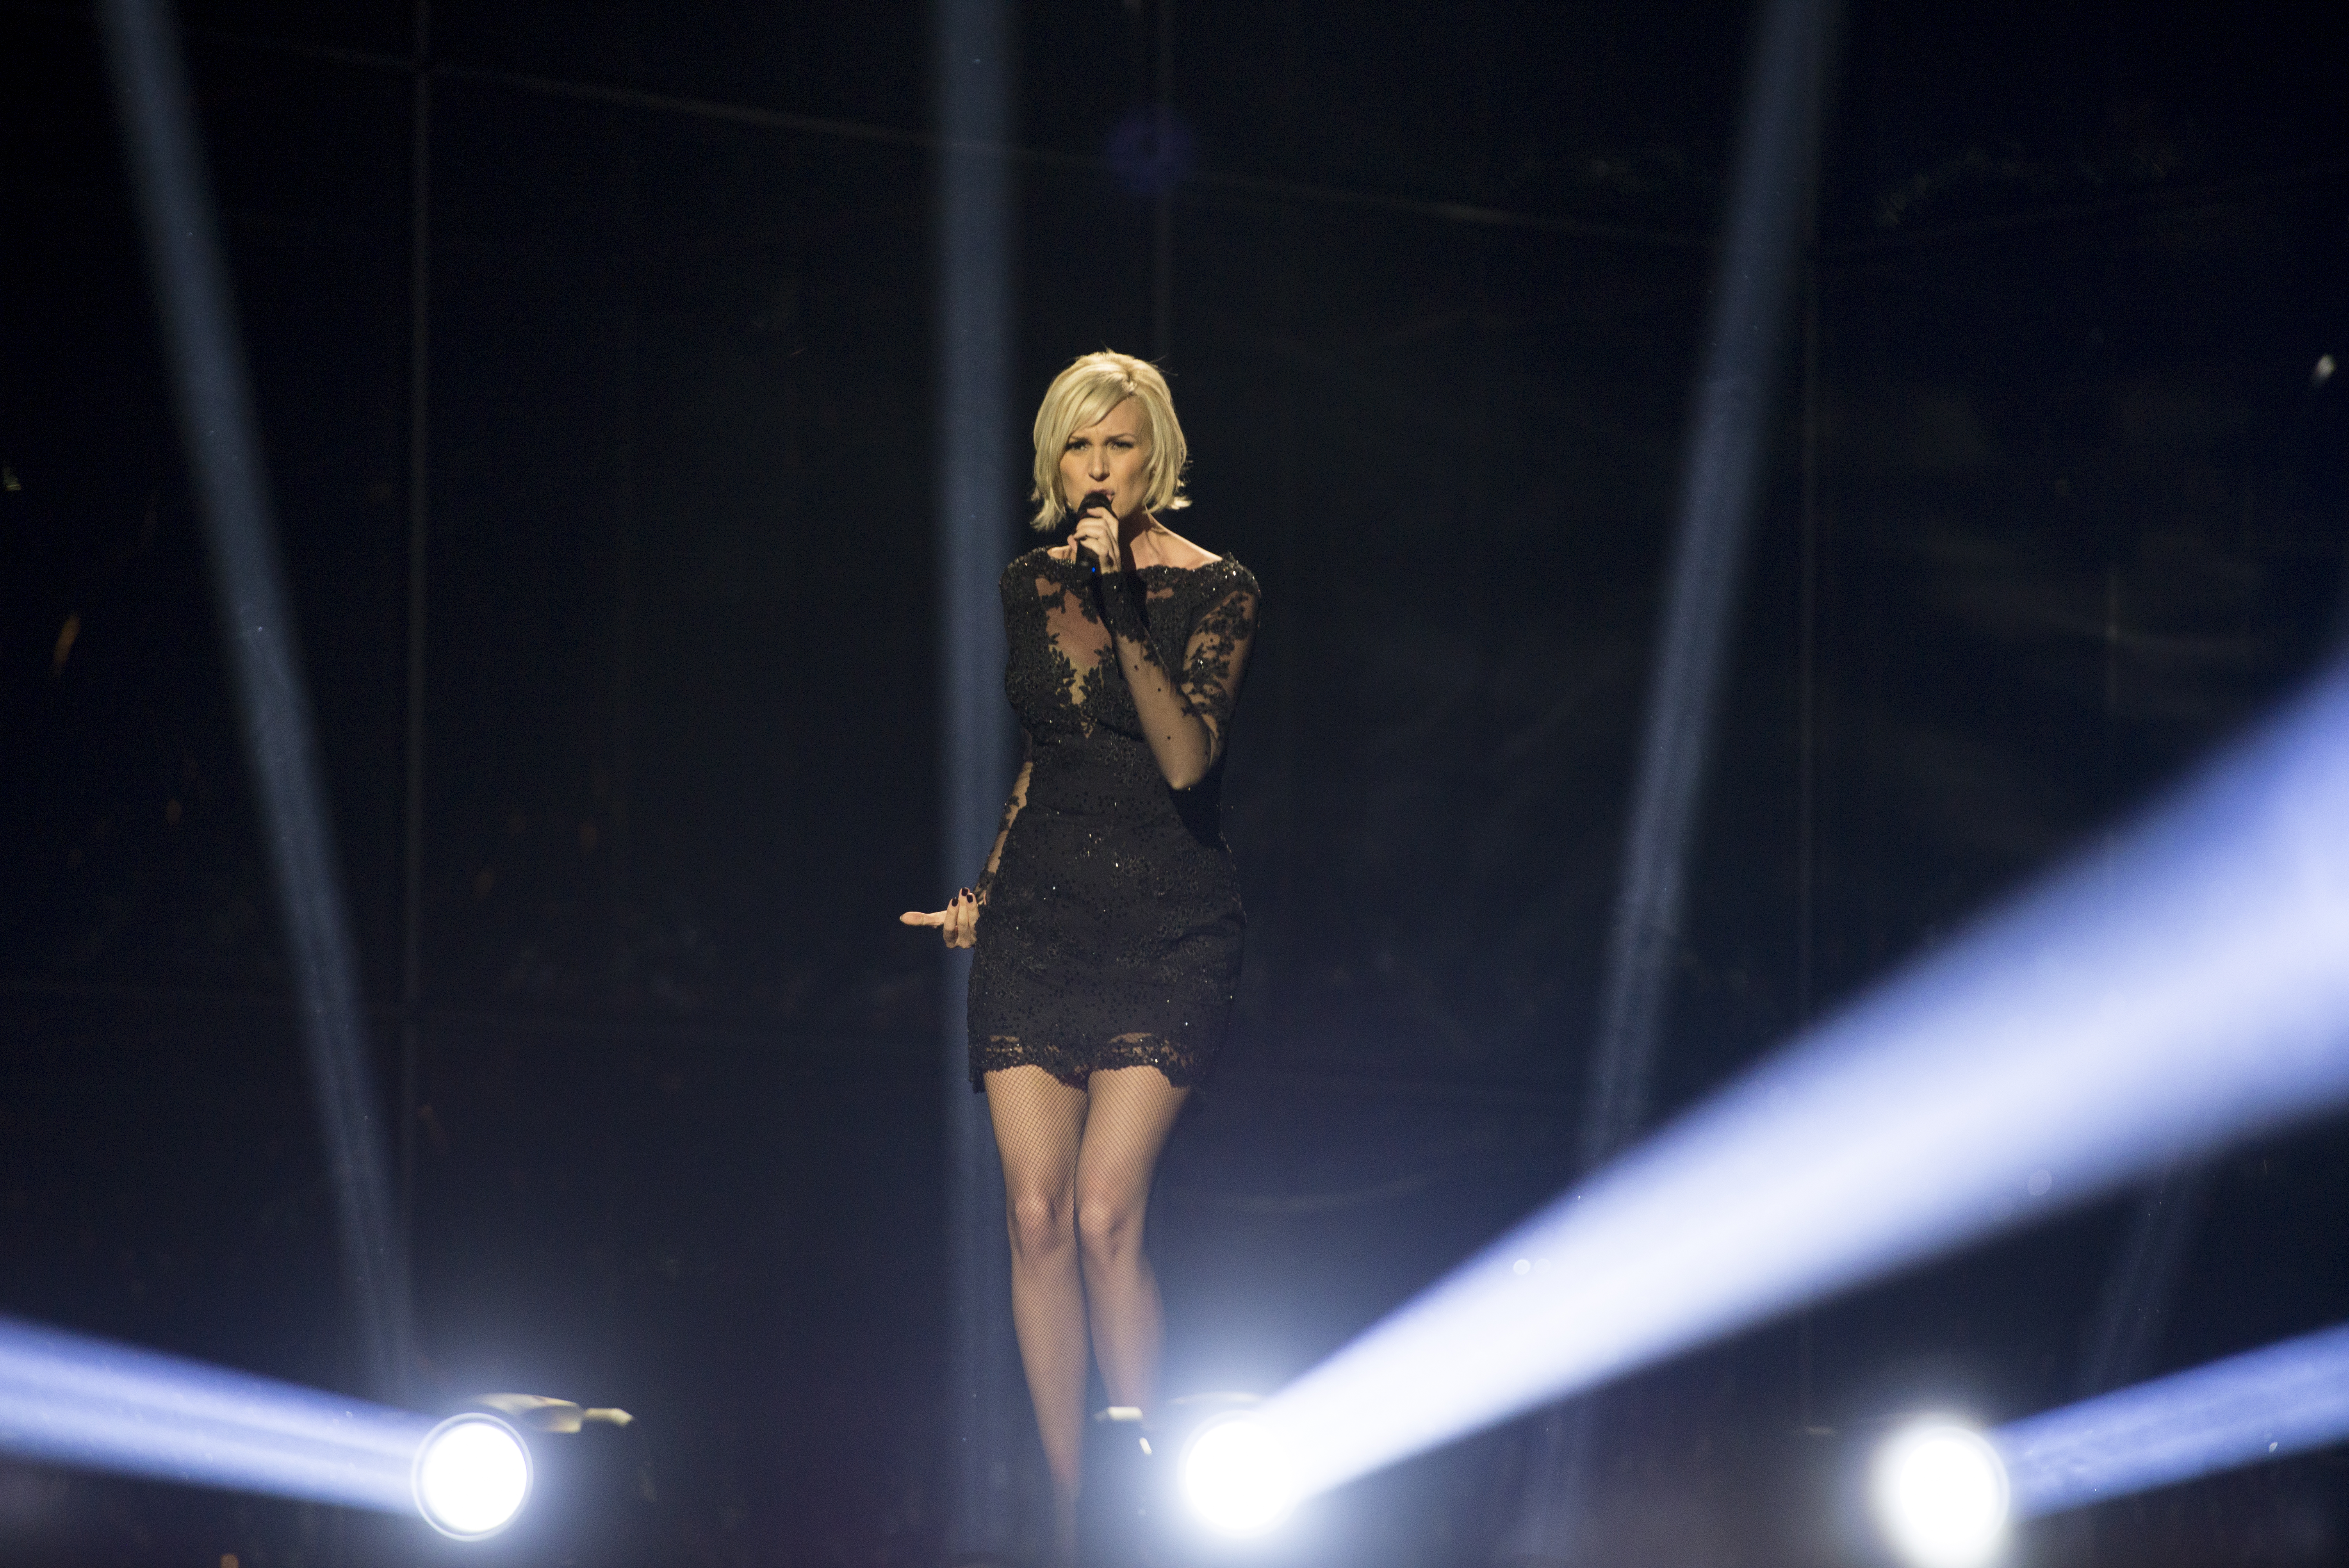 Sweden in the Eurovision Song Contest 2014